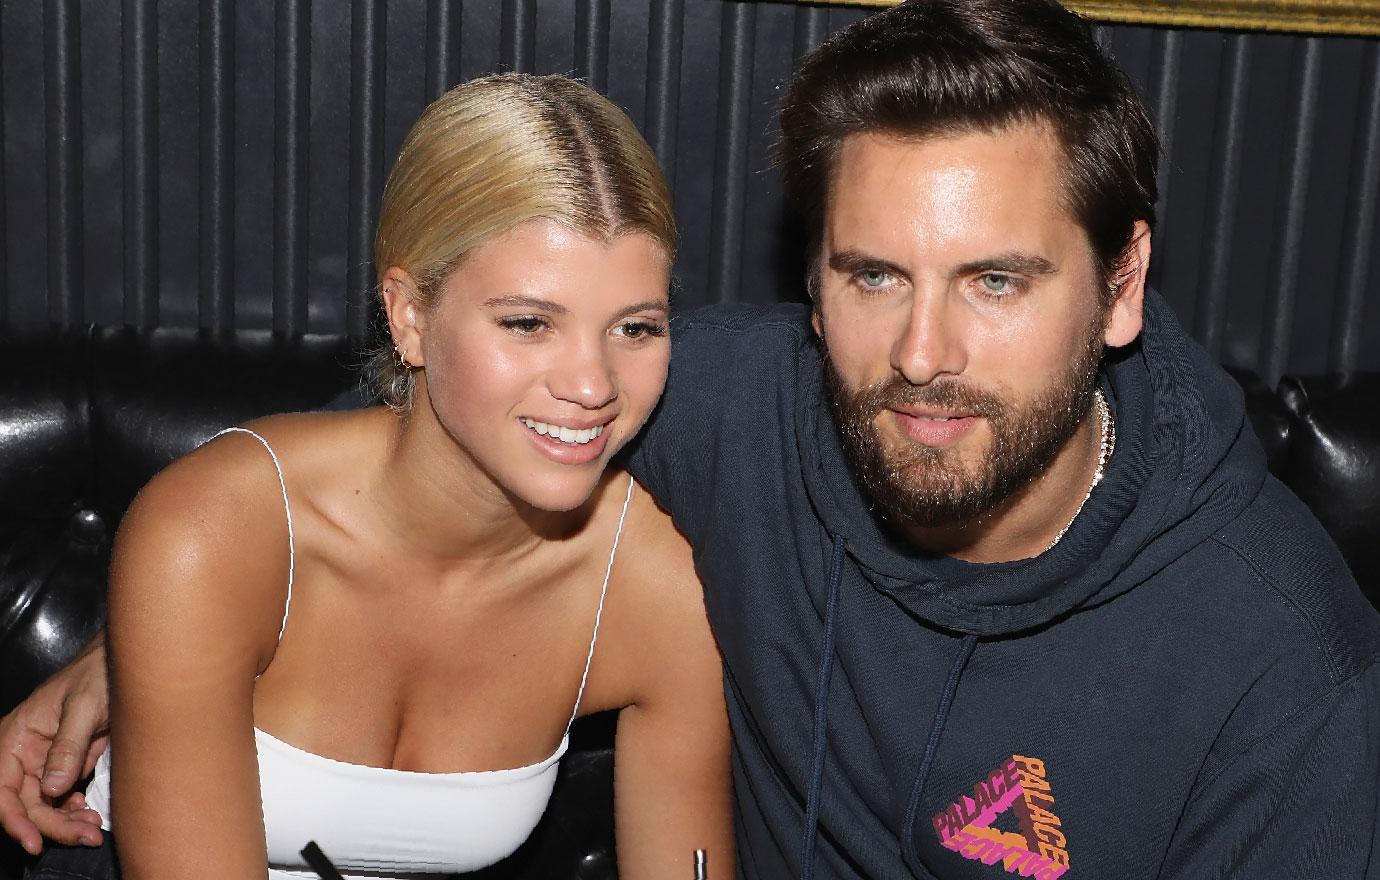 Sofia Richie Celebrates 20th Birthday In Mexico With Scott Disick